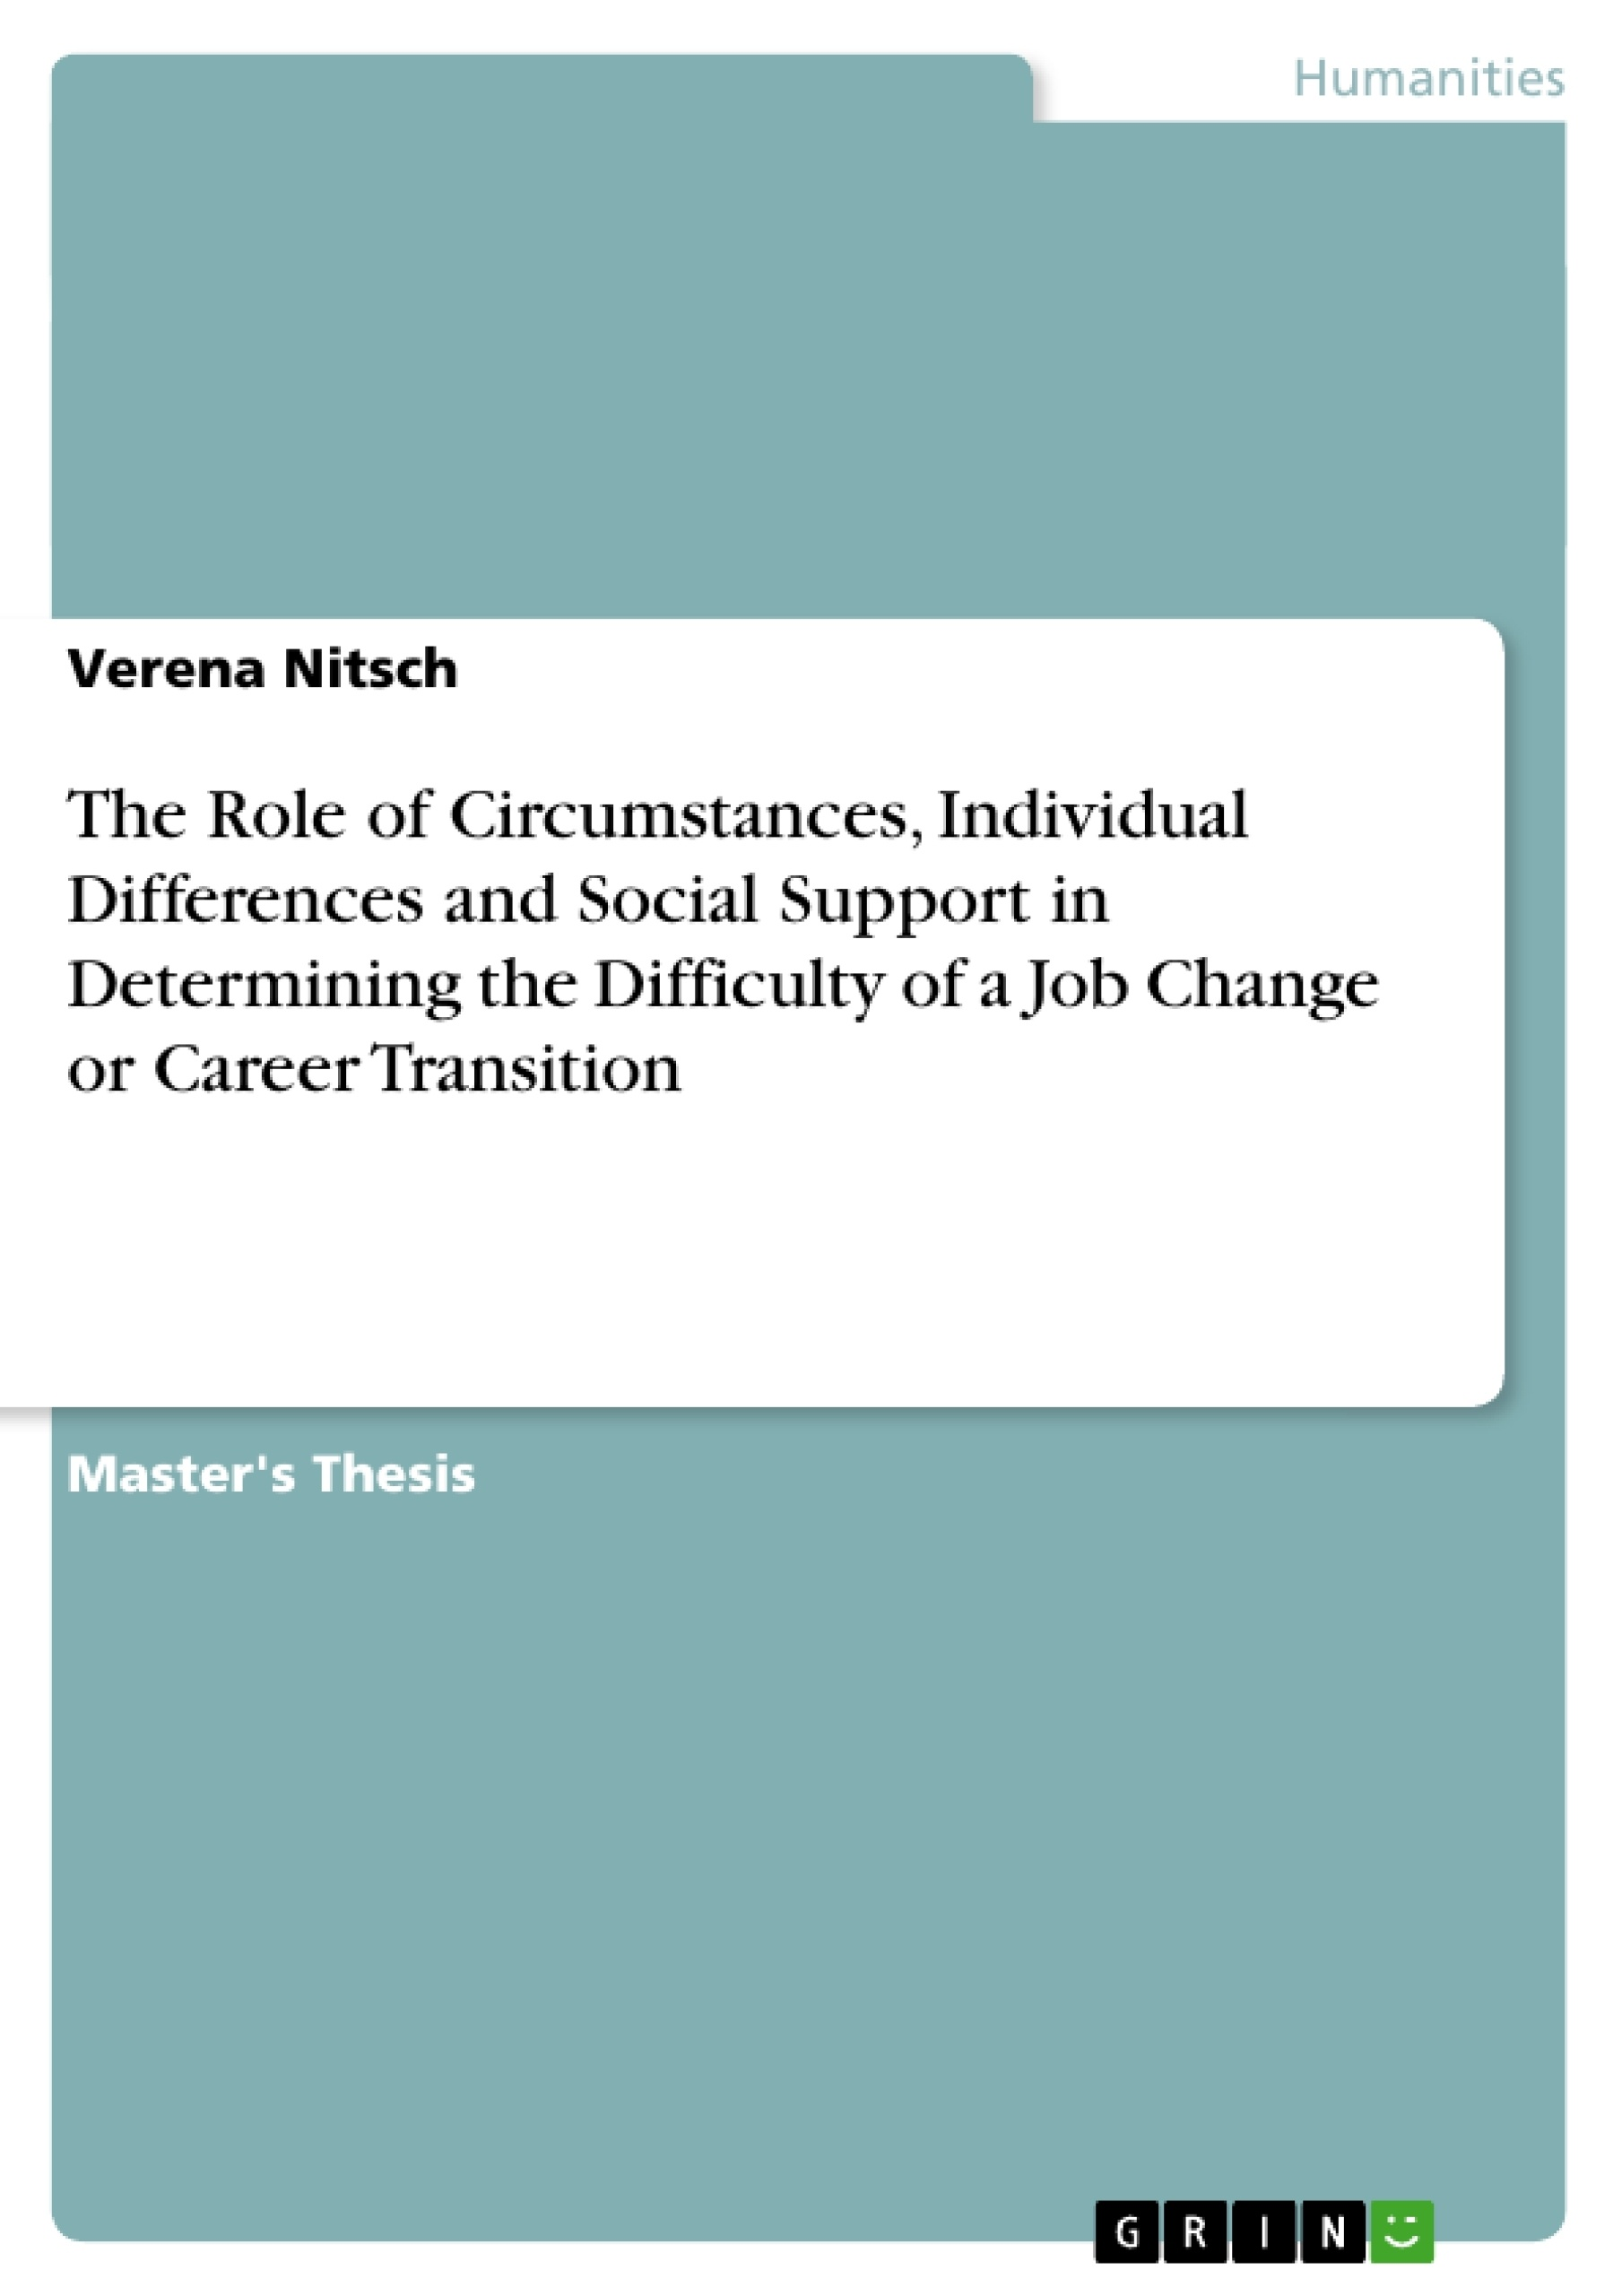 Title: The Role of Circumstances, Individual Differences and Social Support in Determining the Difficulty of a Job Change or Career Transition